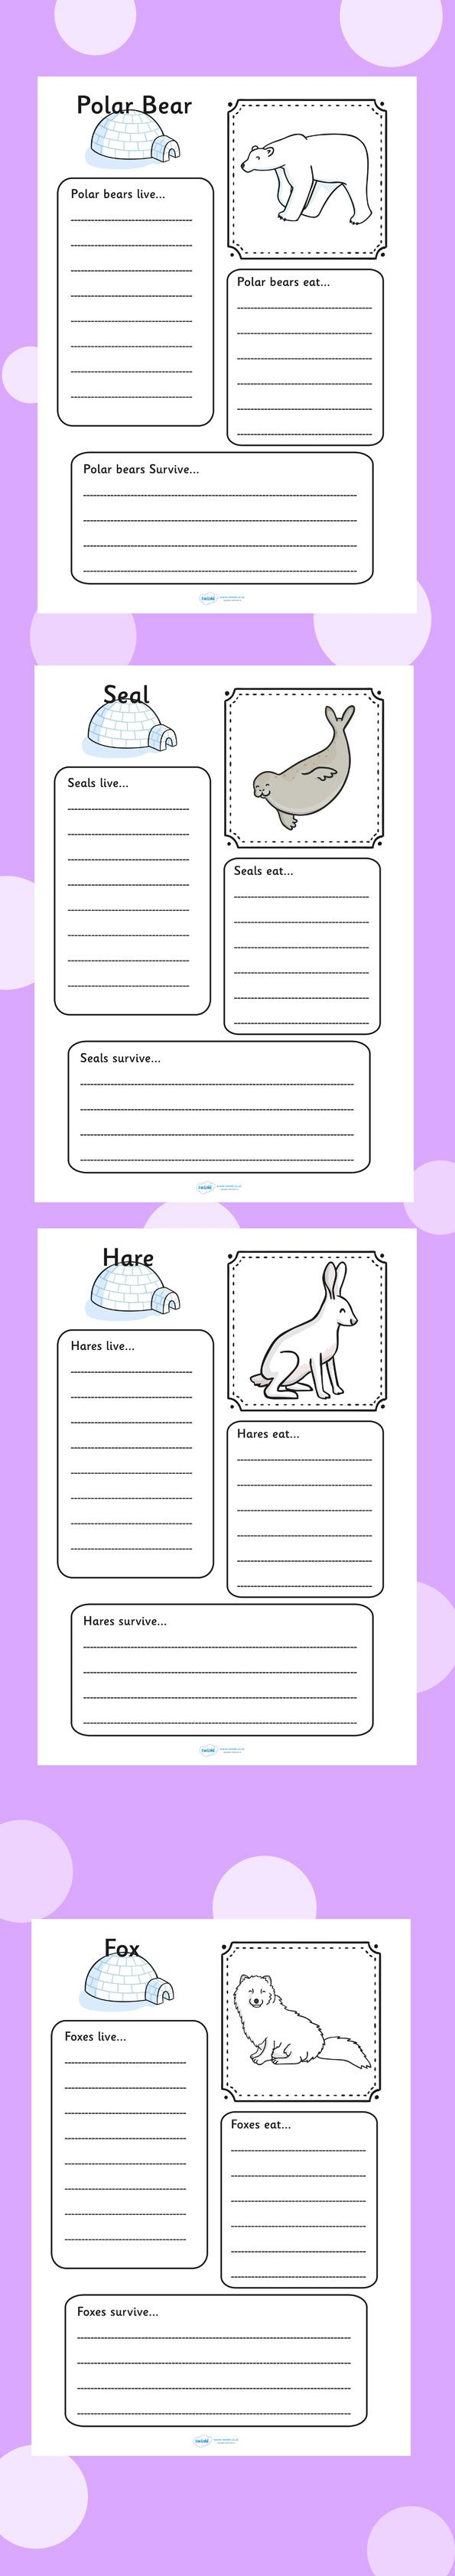 Worksheets Animal Adaptations Worksheets best 25 polar bear adaptations ideas on pinterest arctic animal colour and writing worksheets ice fox wolf